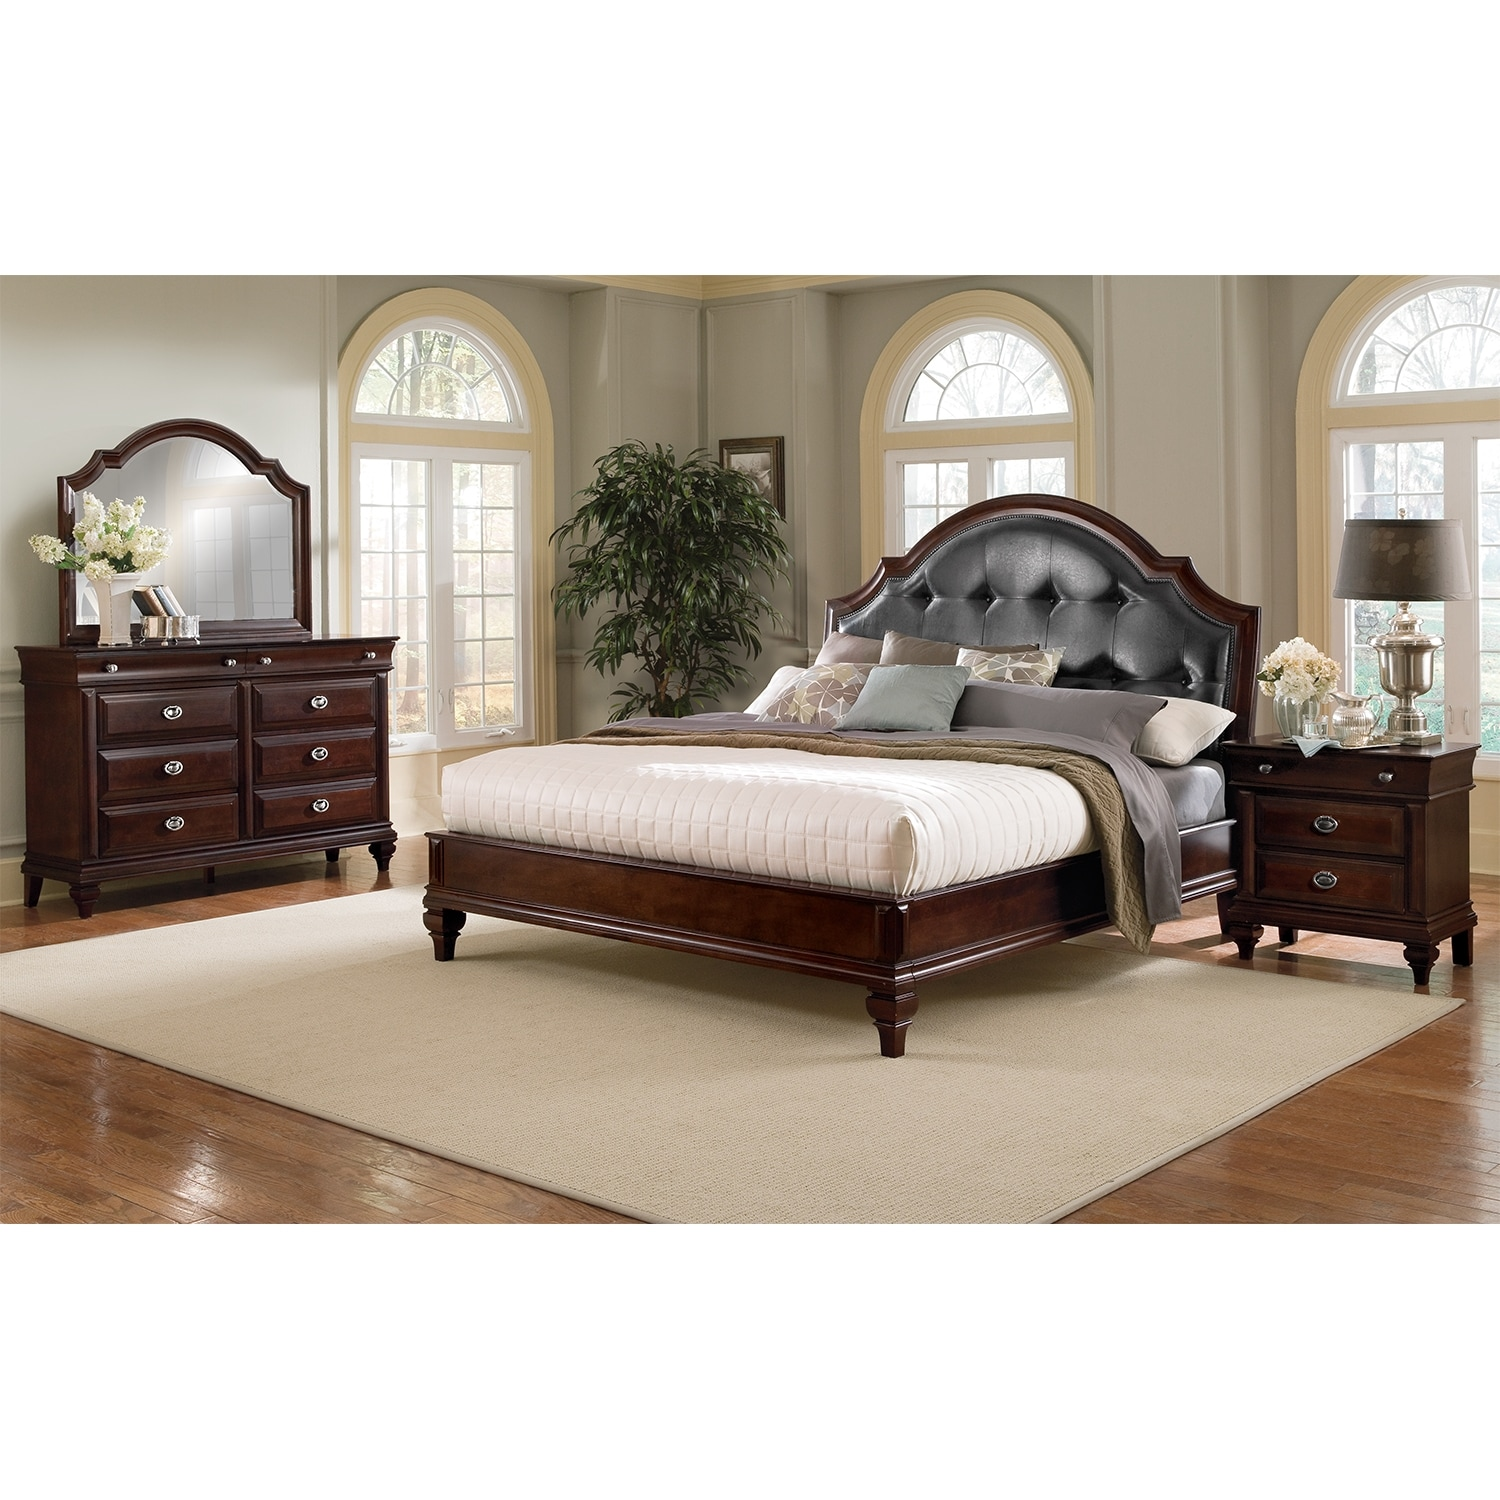 Manhattan 6 piece king bedroom set cherry value city for King bedroom sets